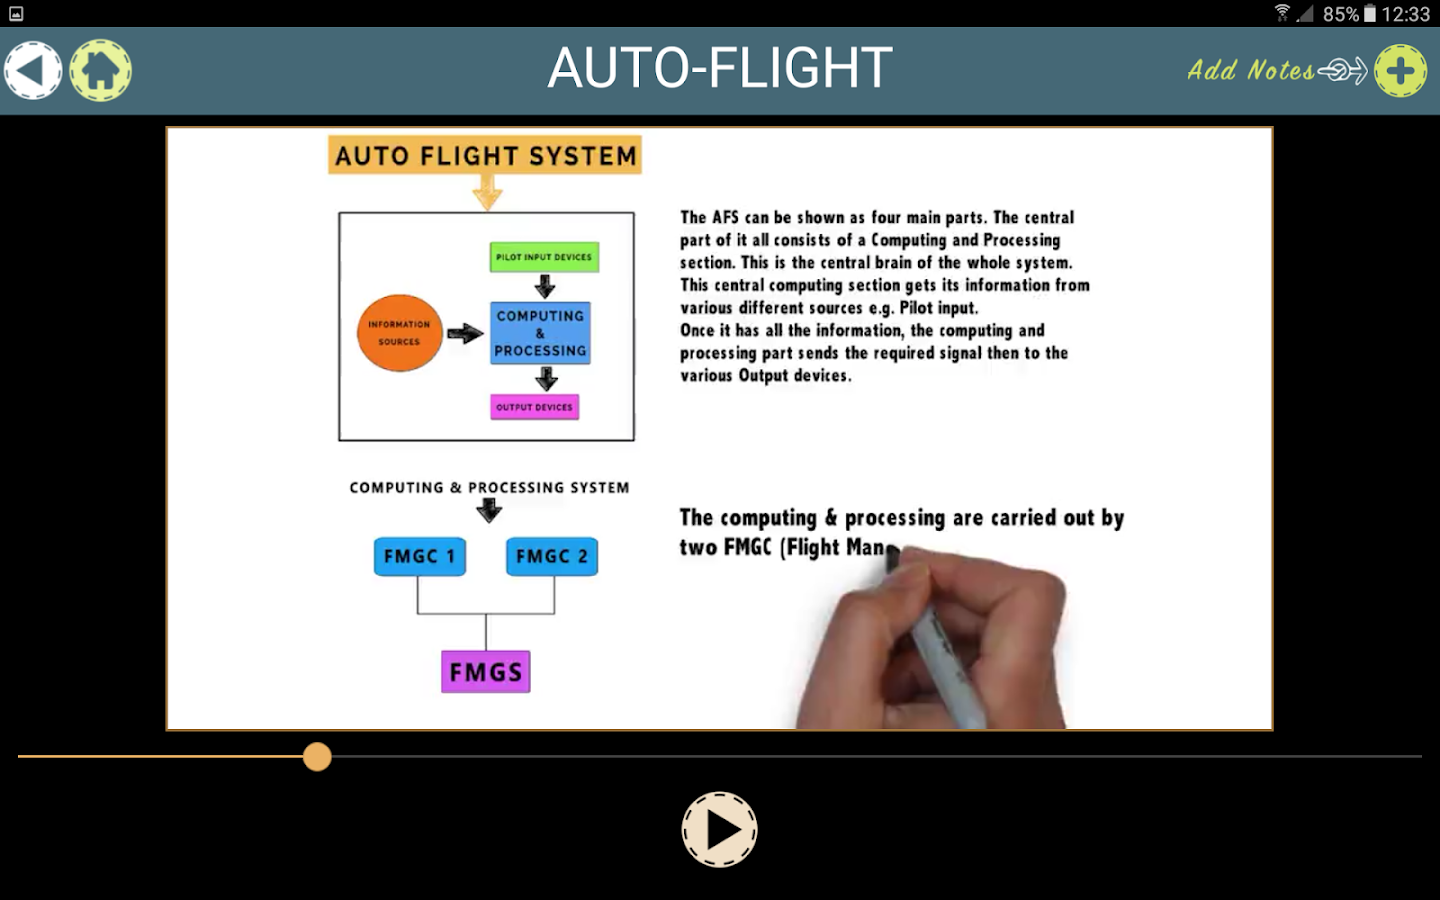 Airbus a320 systems cbt 10 apk download android education apps airbus a320 systems cbt 10 screenshot 5 fandeluxe Choice Image